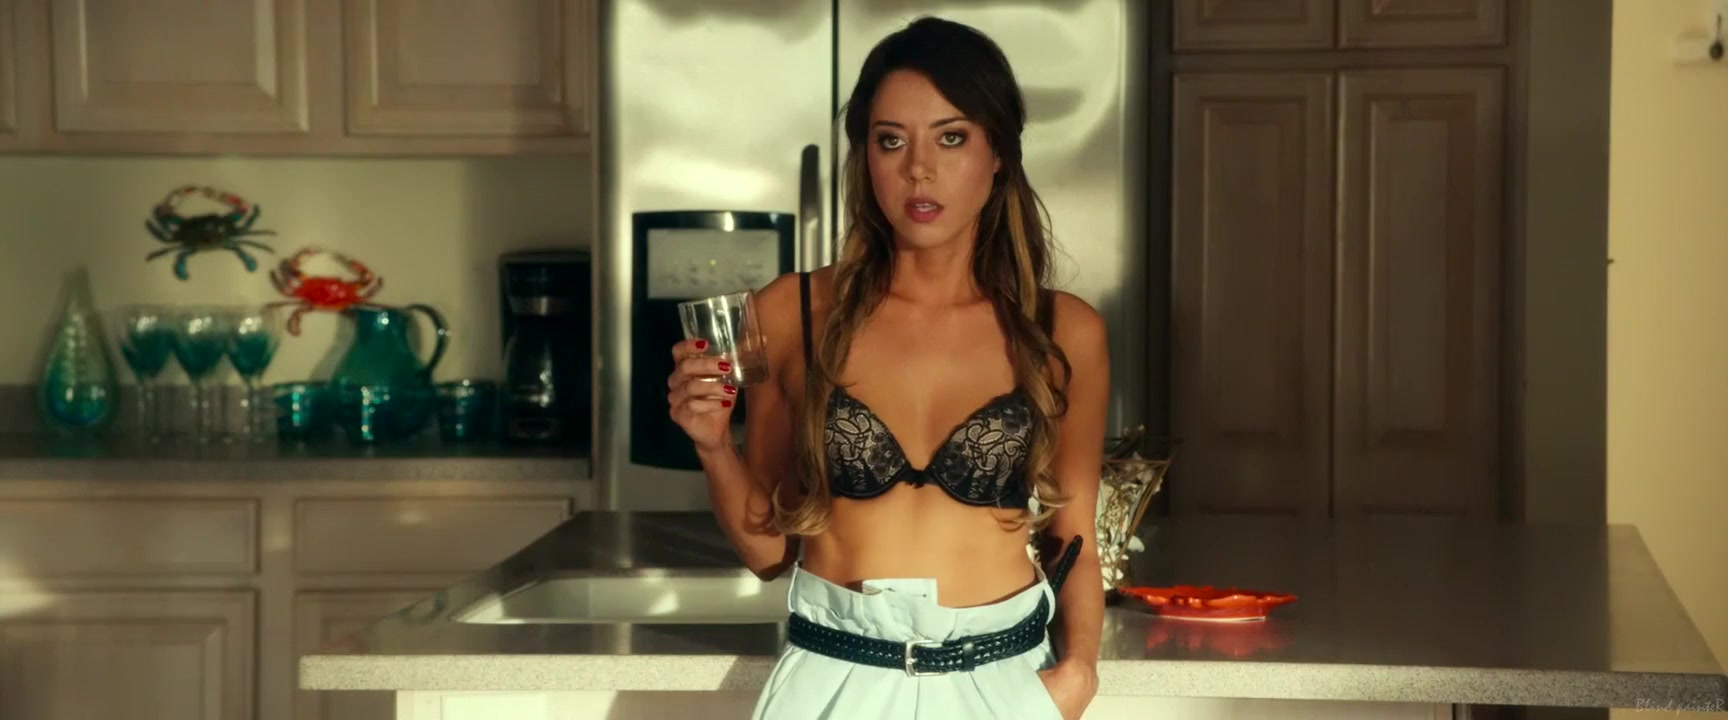 Dirty Grandpa (2016) Aubrey Plaza prettiest indian woman fucking